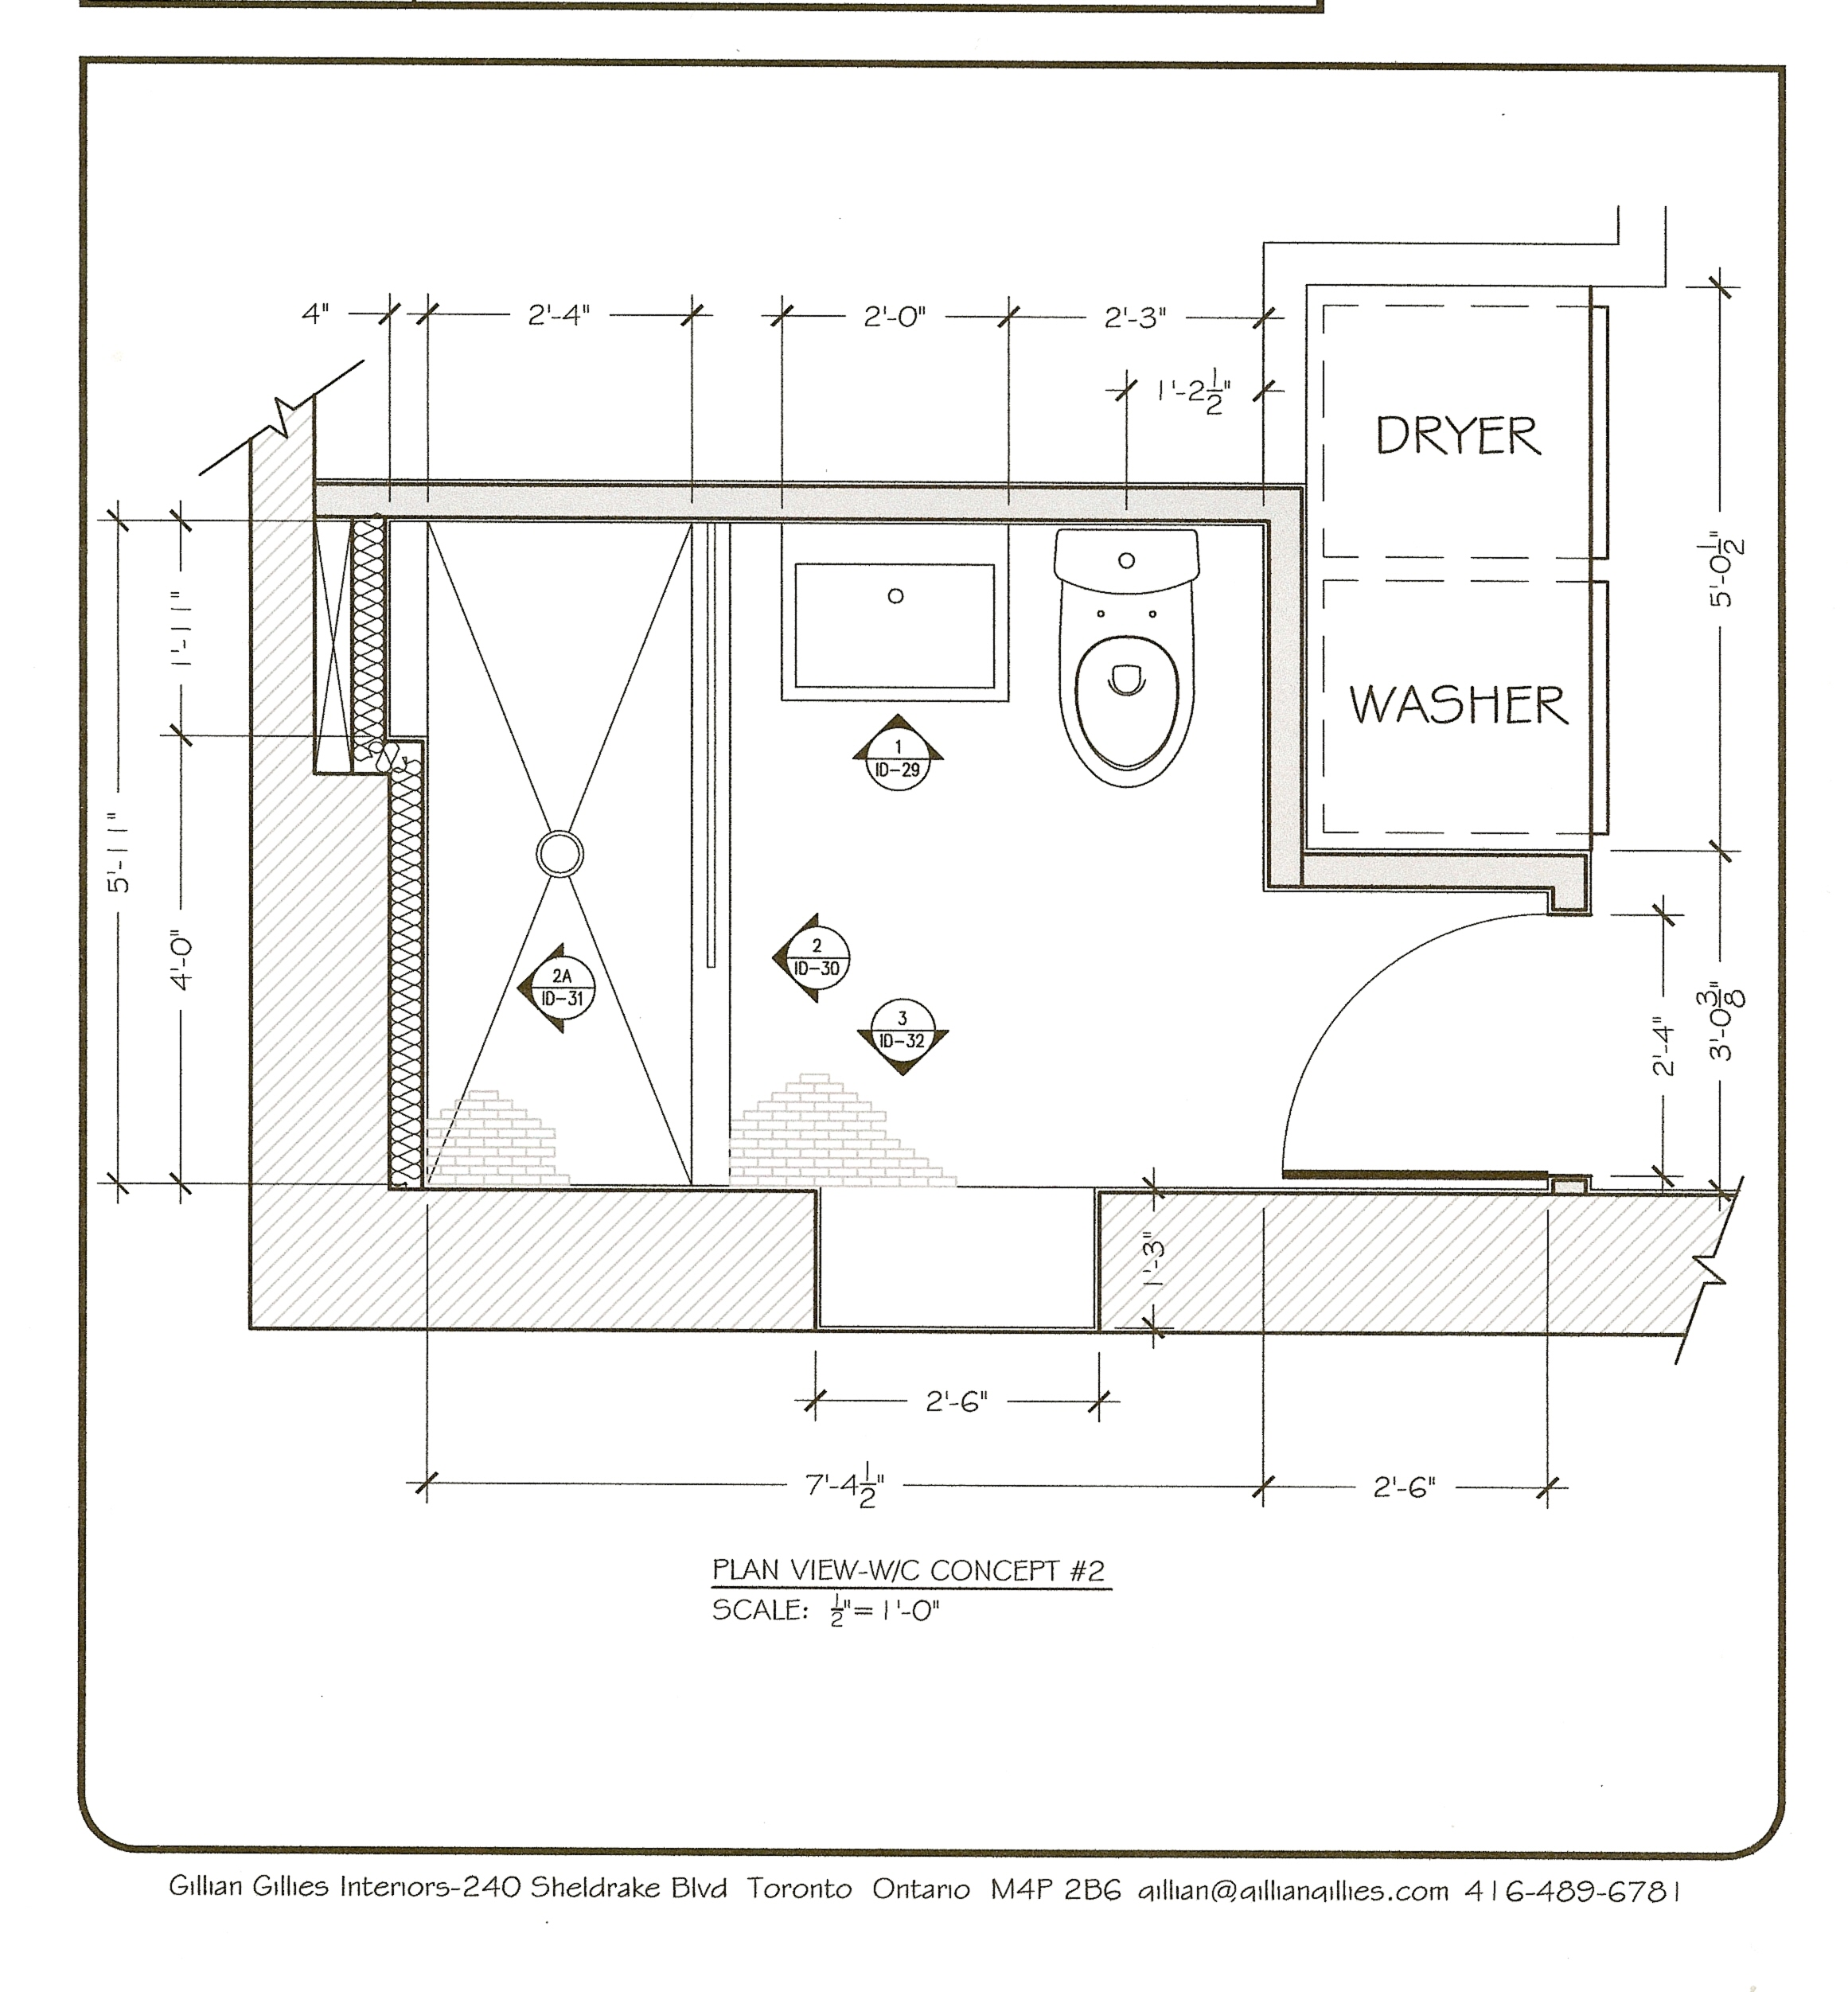 Project james basement shower room toronto interior Floor plan view